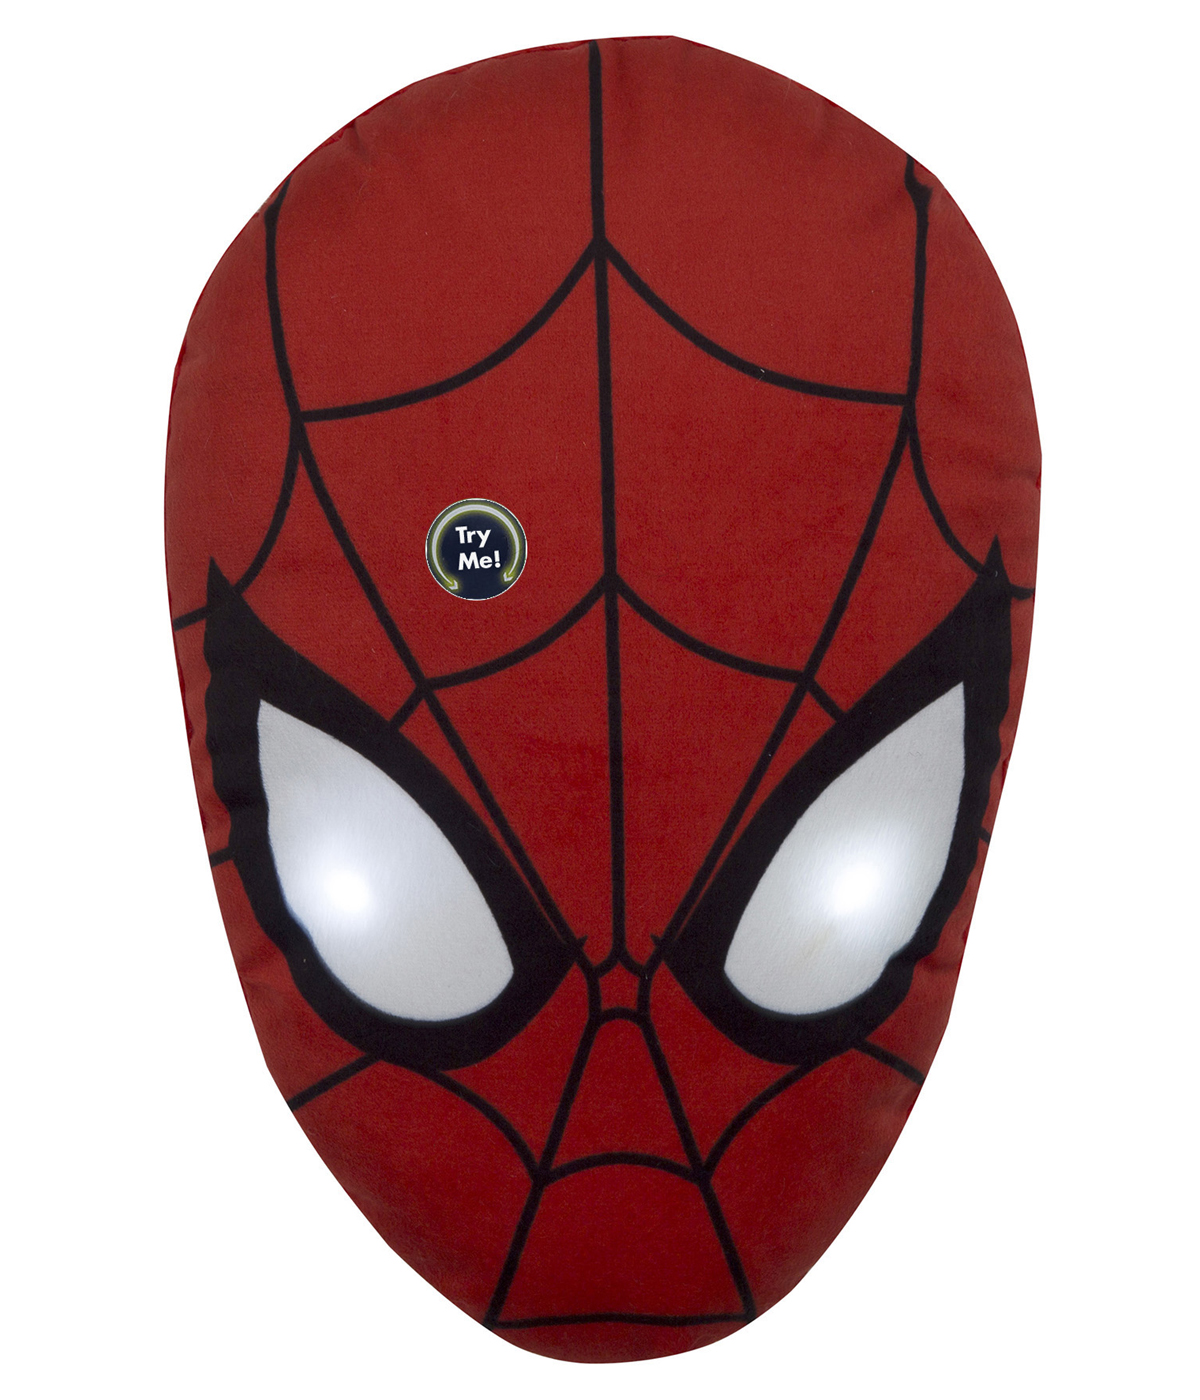 PELUCHE CUSCINO Sagomato Con LED MARVEL - SPIDERMAN